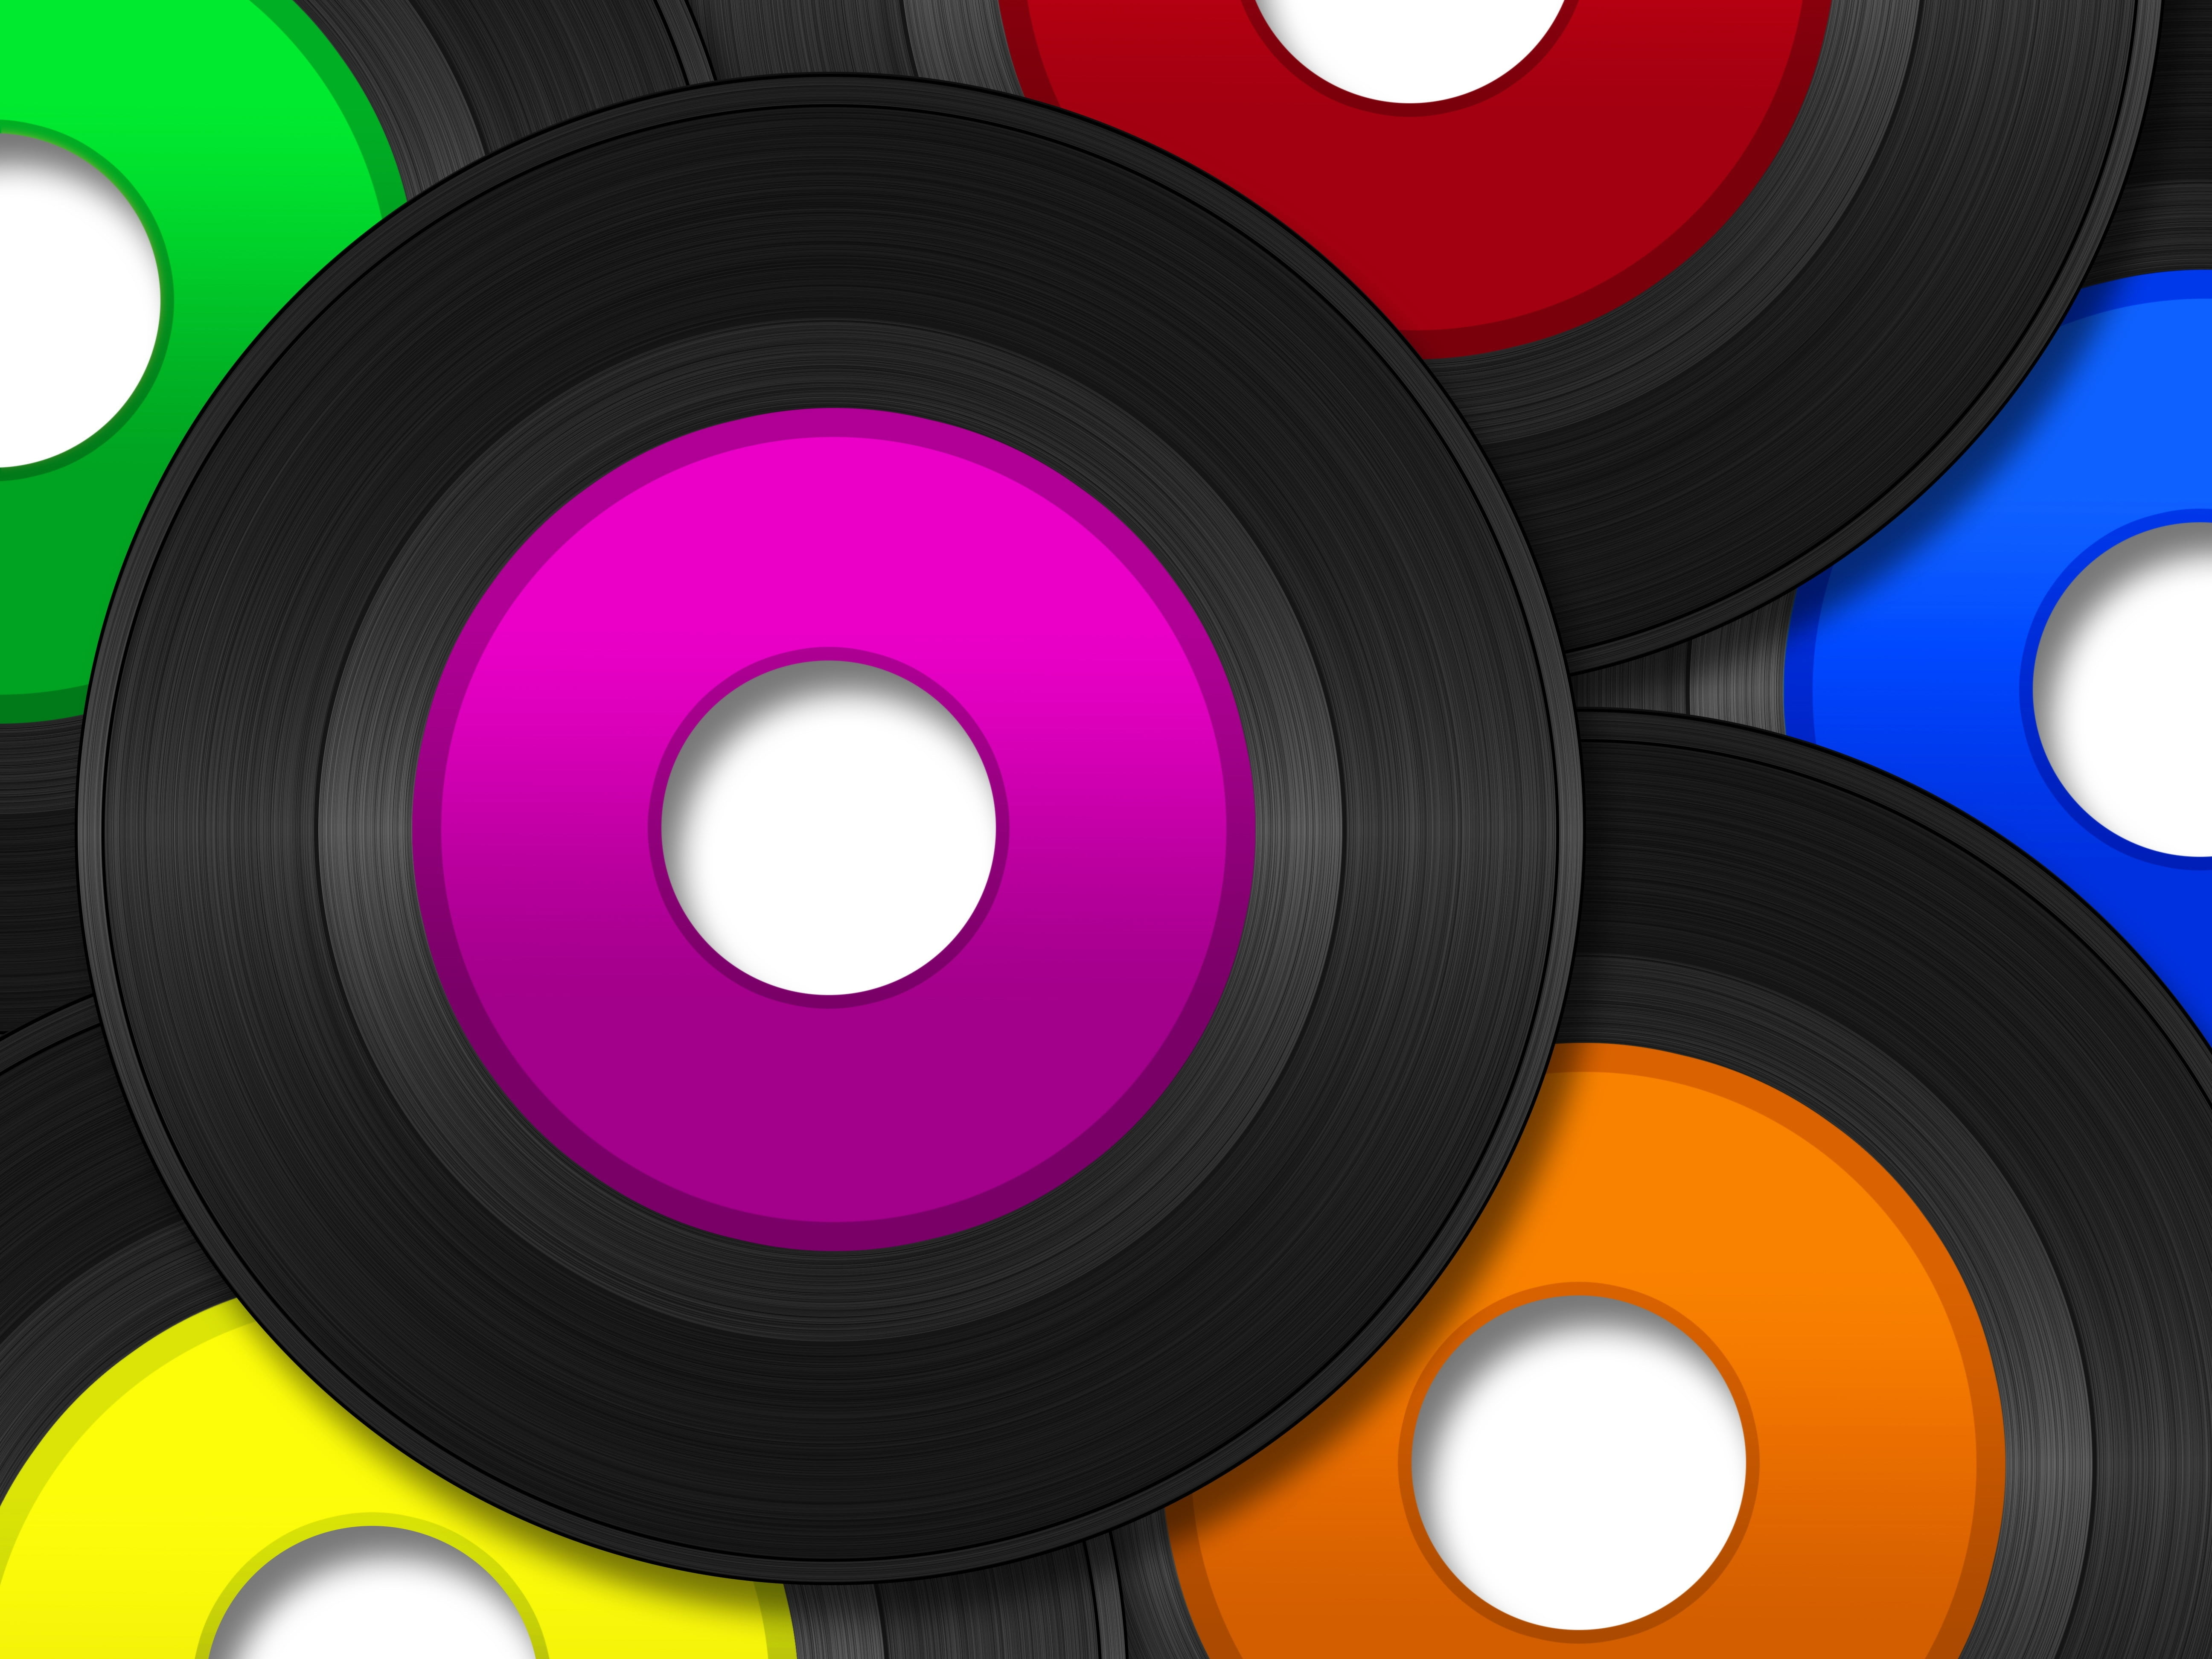 Black vinyl records HD wallpaper Wallpaper Flare 5184x3888